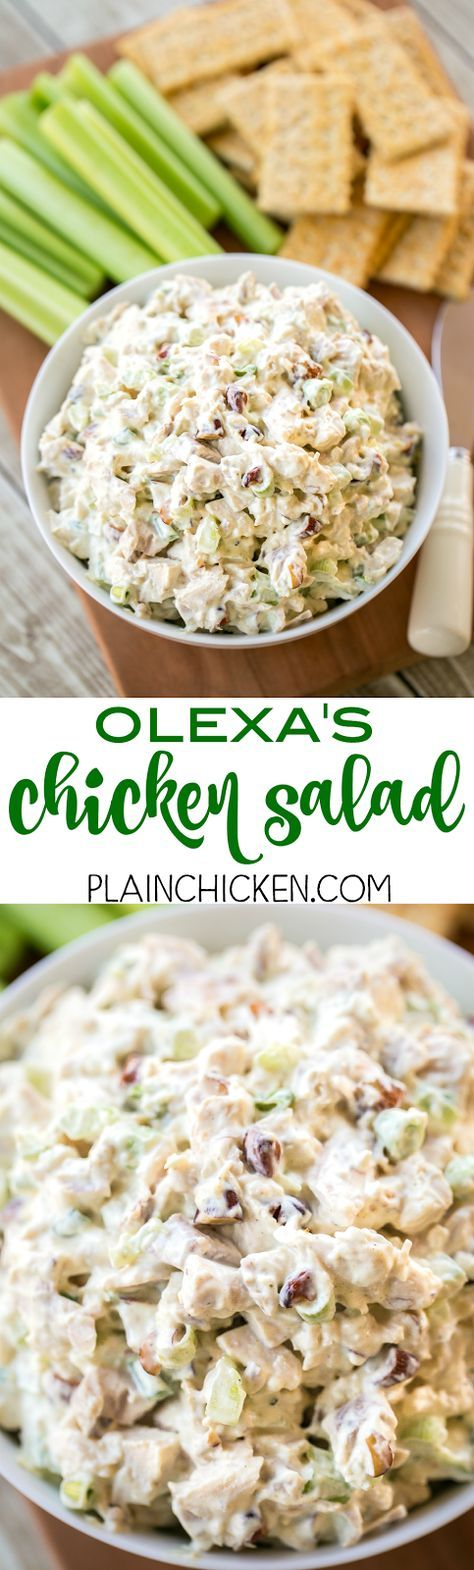 Olexa's Chicken Salad - This is THE BEST chicken salad EVER!! SO good!!! Chicken, mayo, sour cream, celery, curry, salt, pepper, lemon juice, green onions and smoked almonds. Copycat recipe from the Birmingham, AL restaurant. I think this version is bette